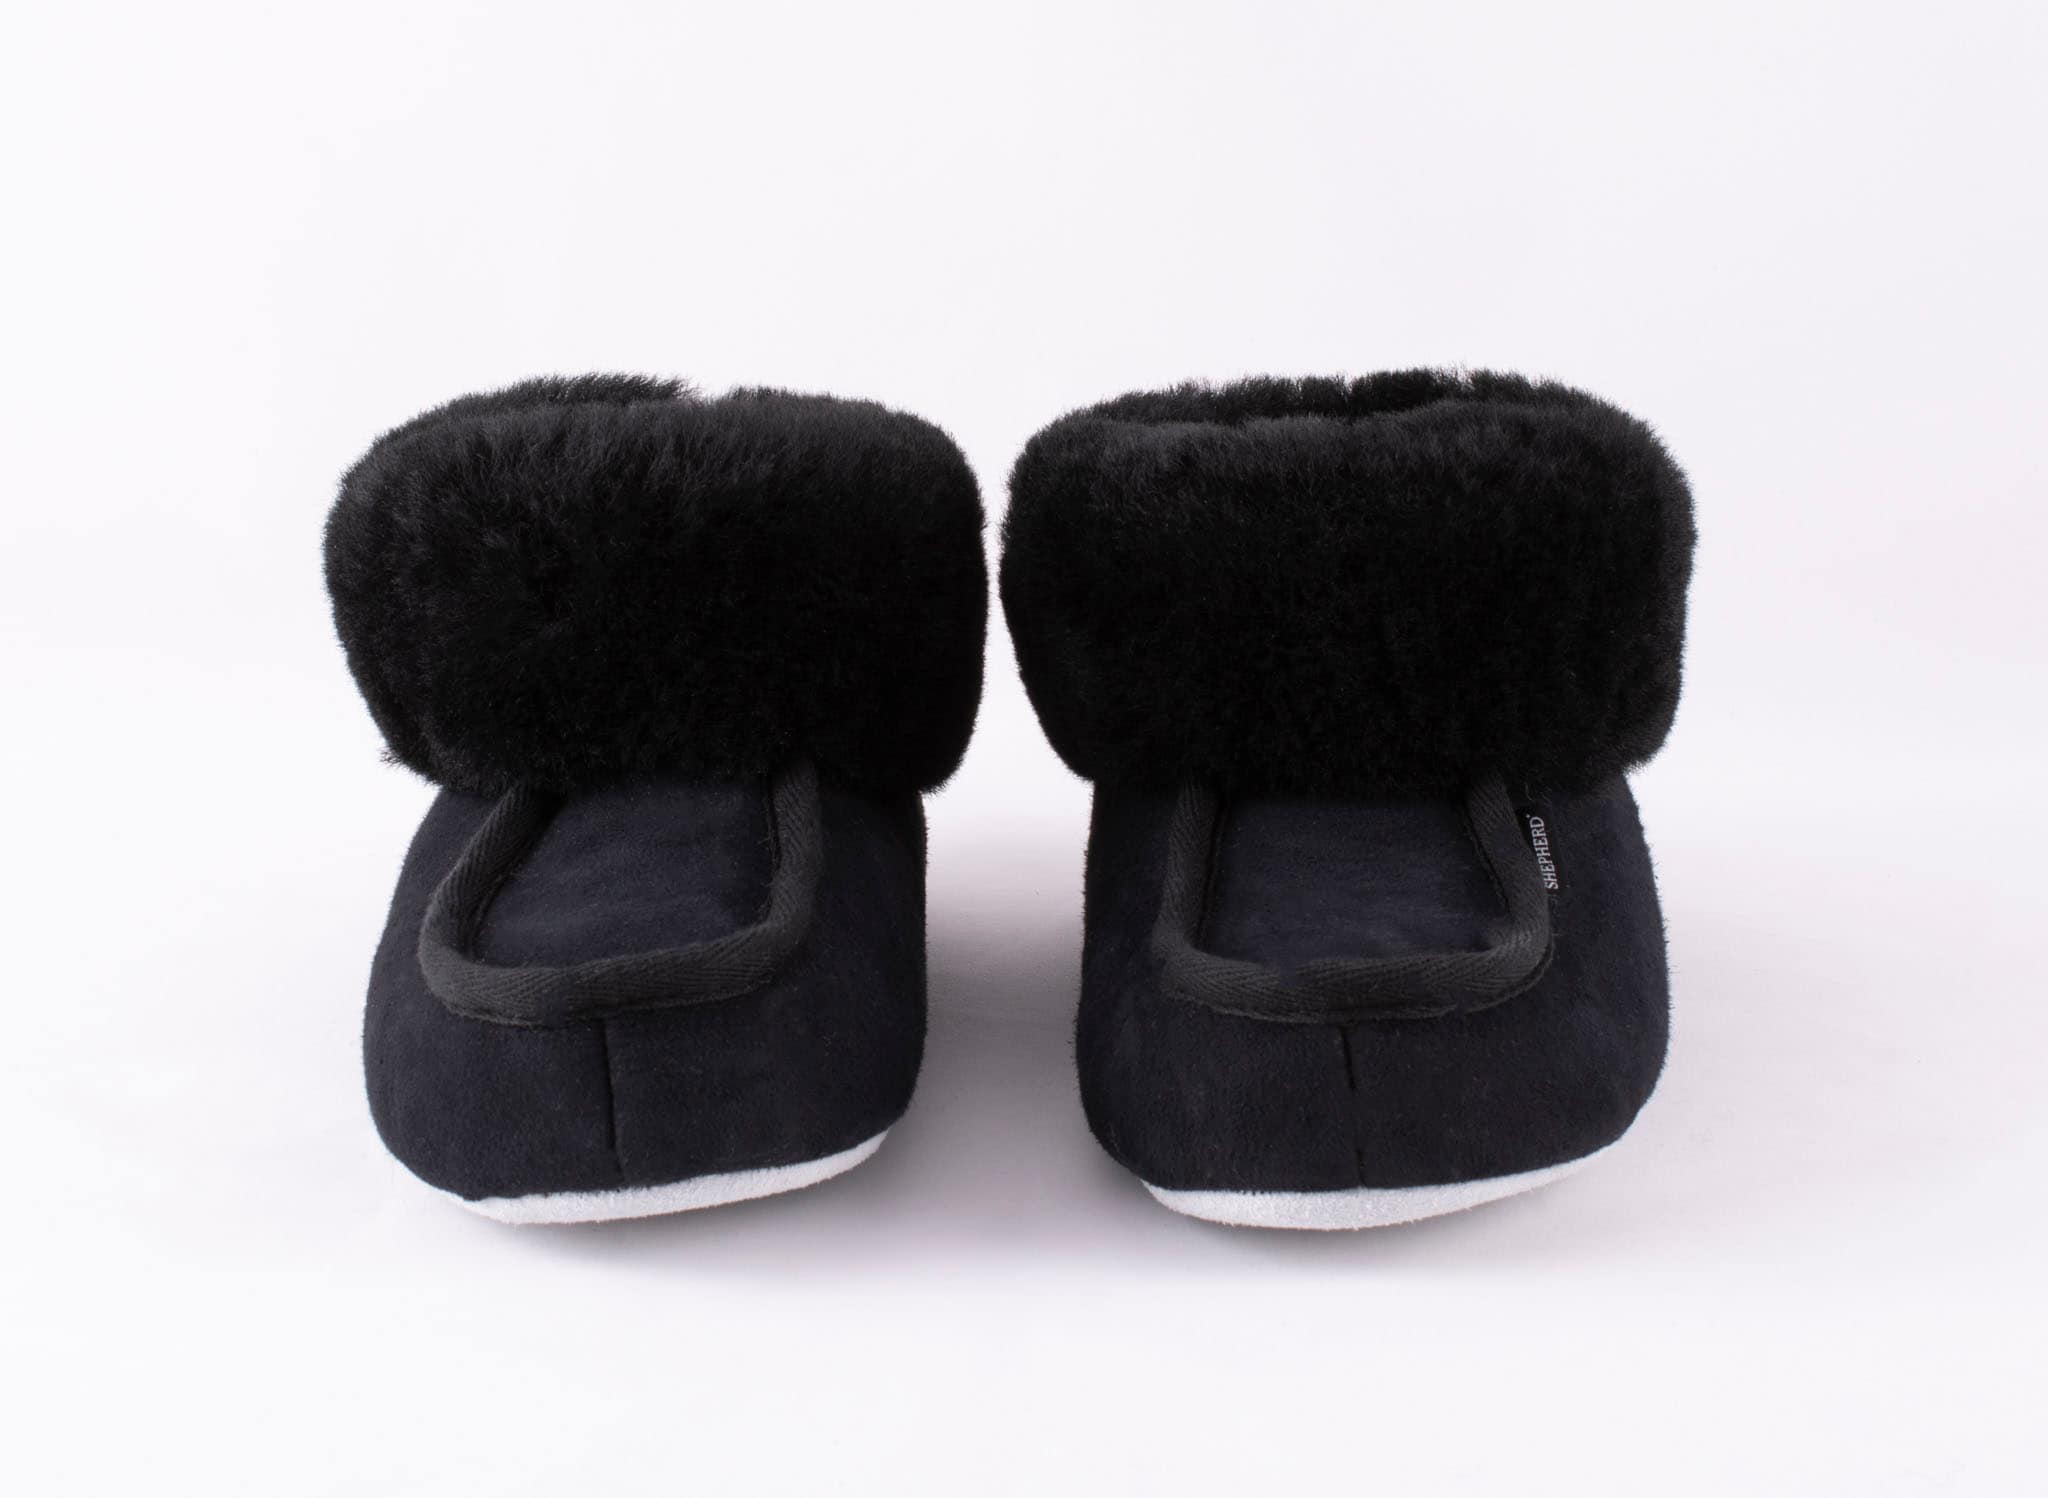 Magnus slippers